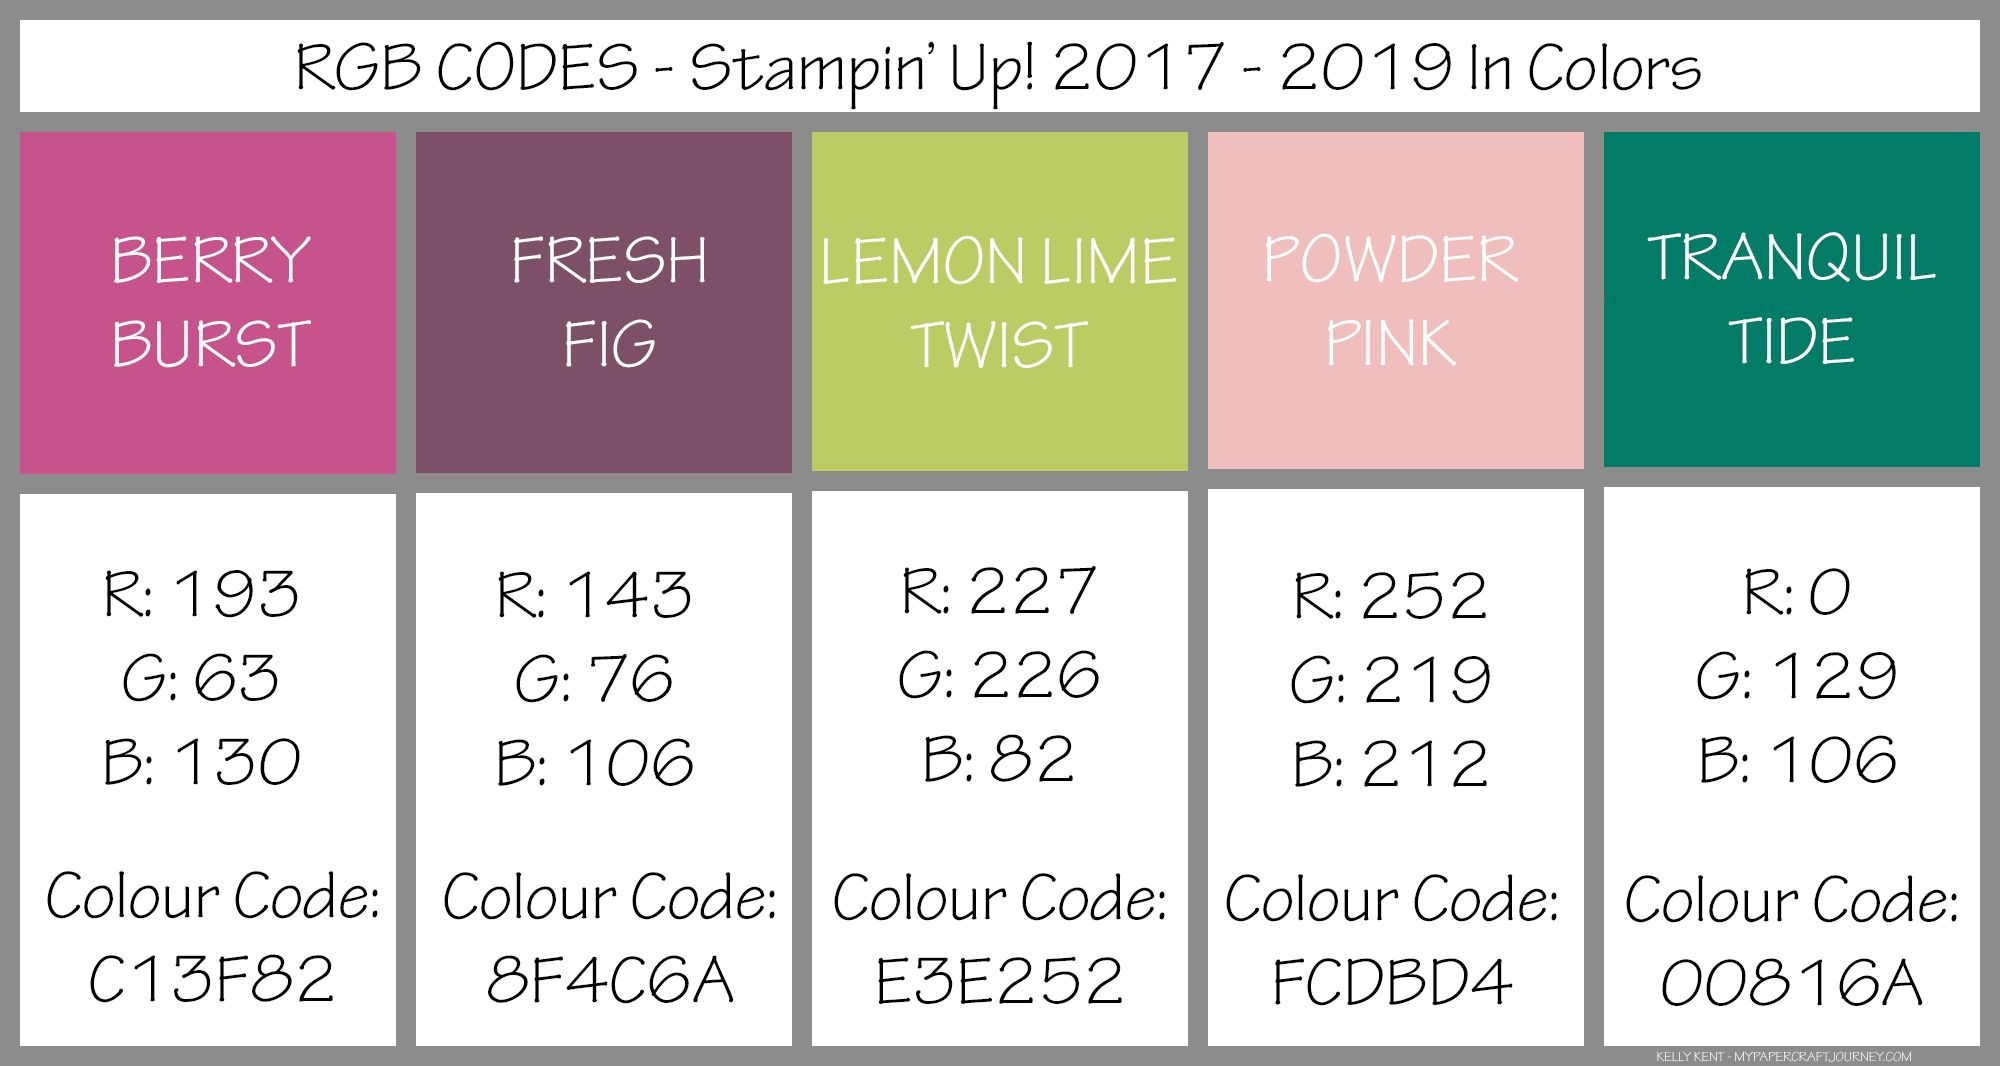 Tranquil Colors Rgb Codes For 20172019 In Colors  Kelly Kent Mypapercraftjourney